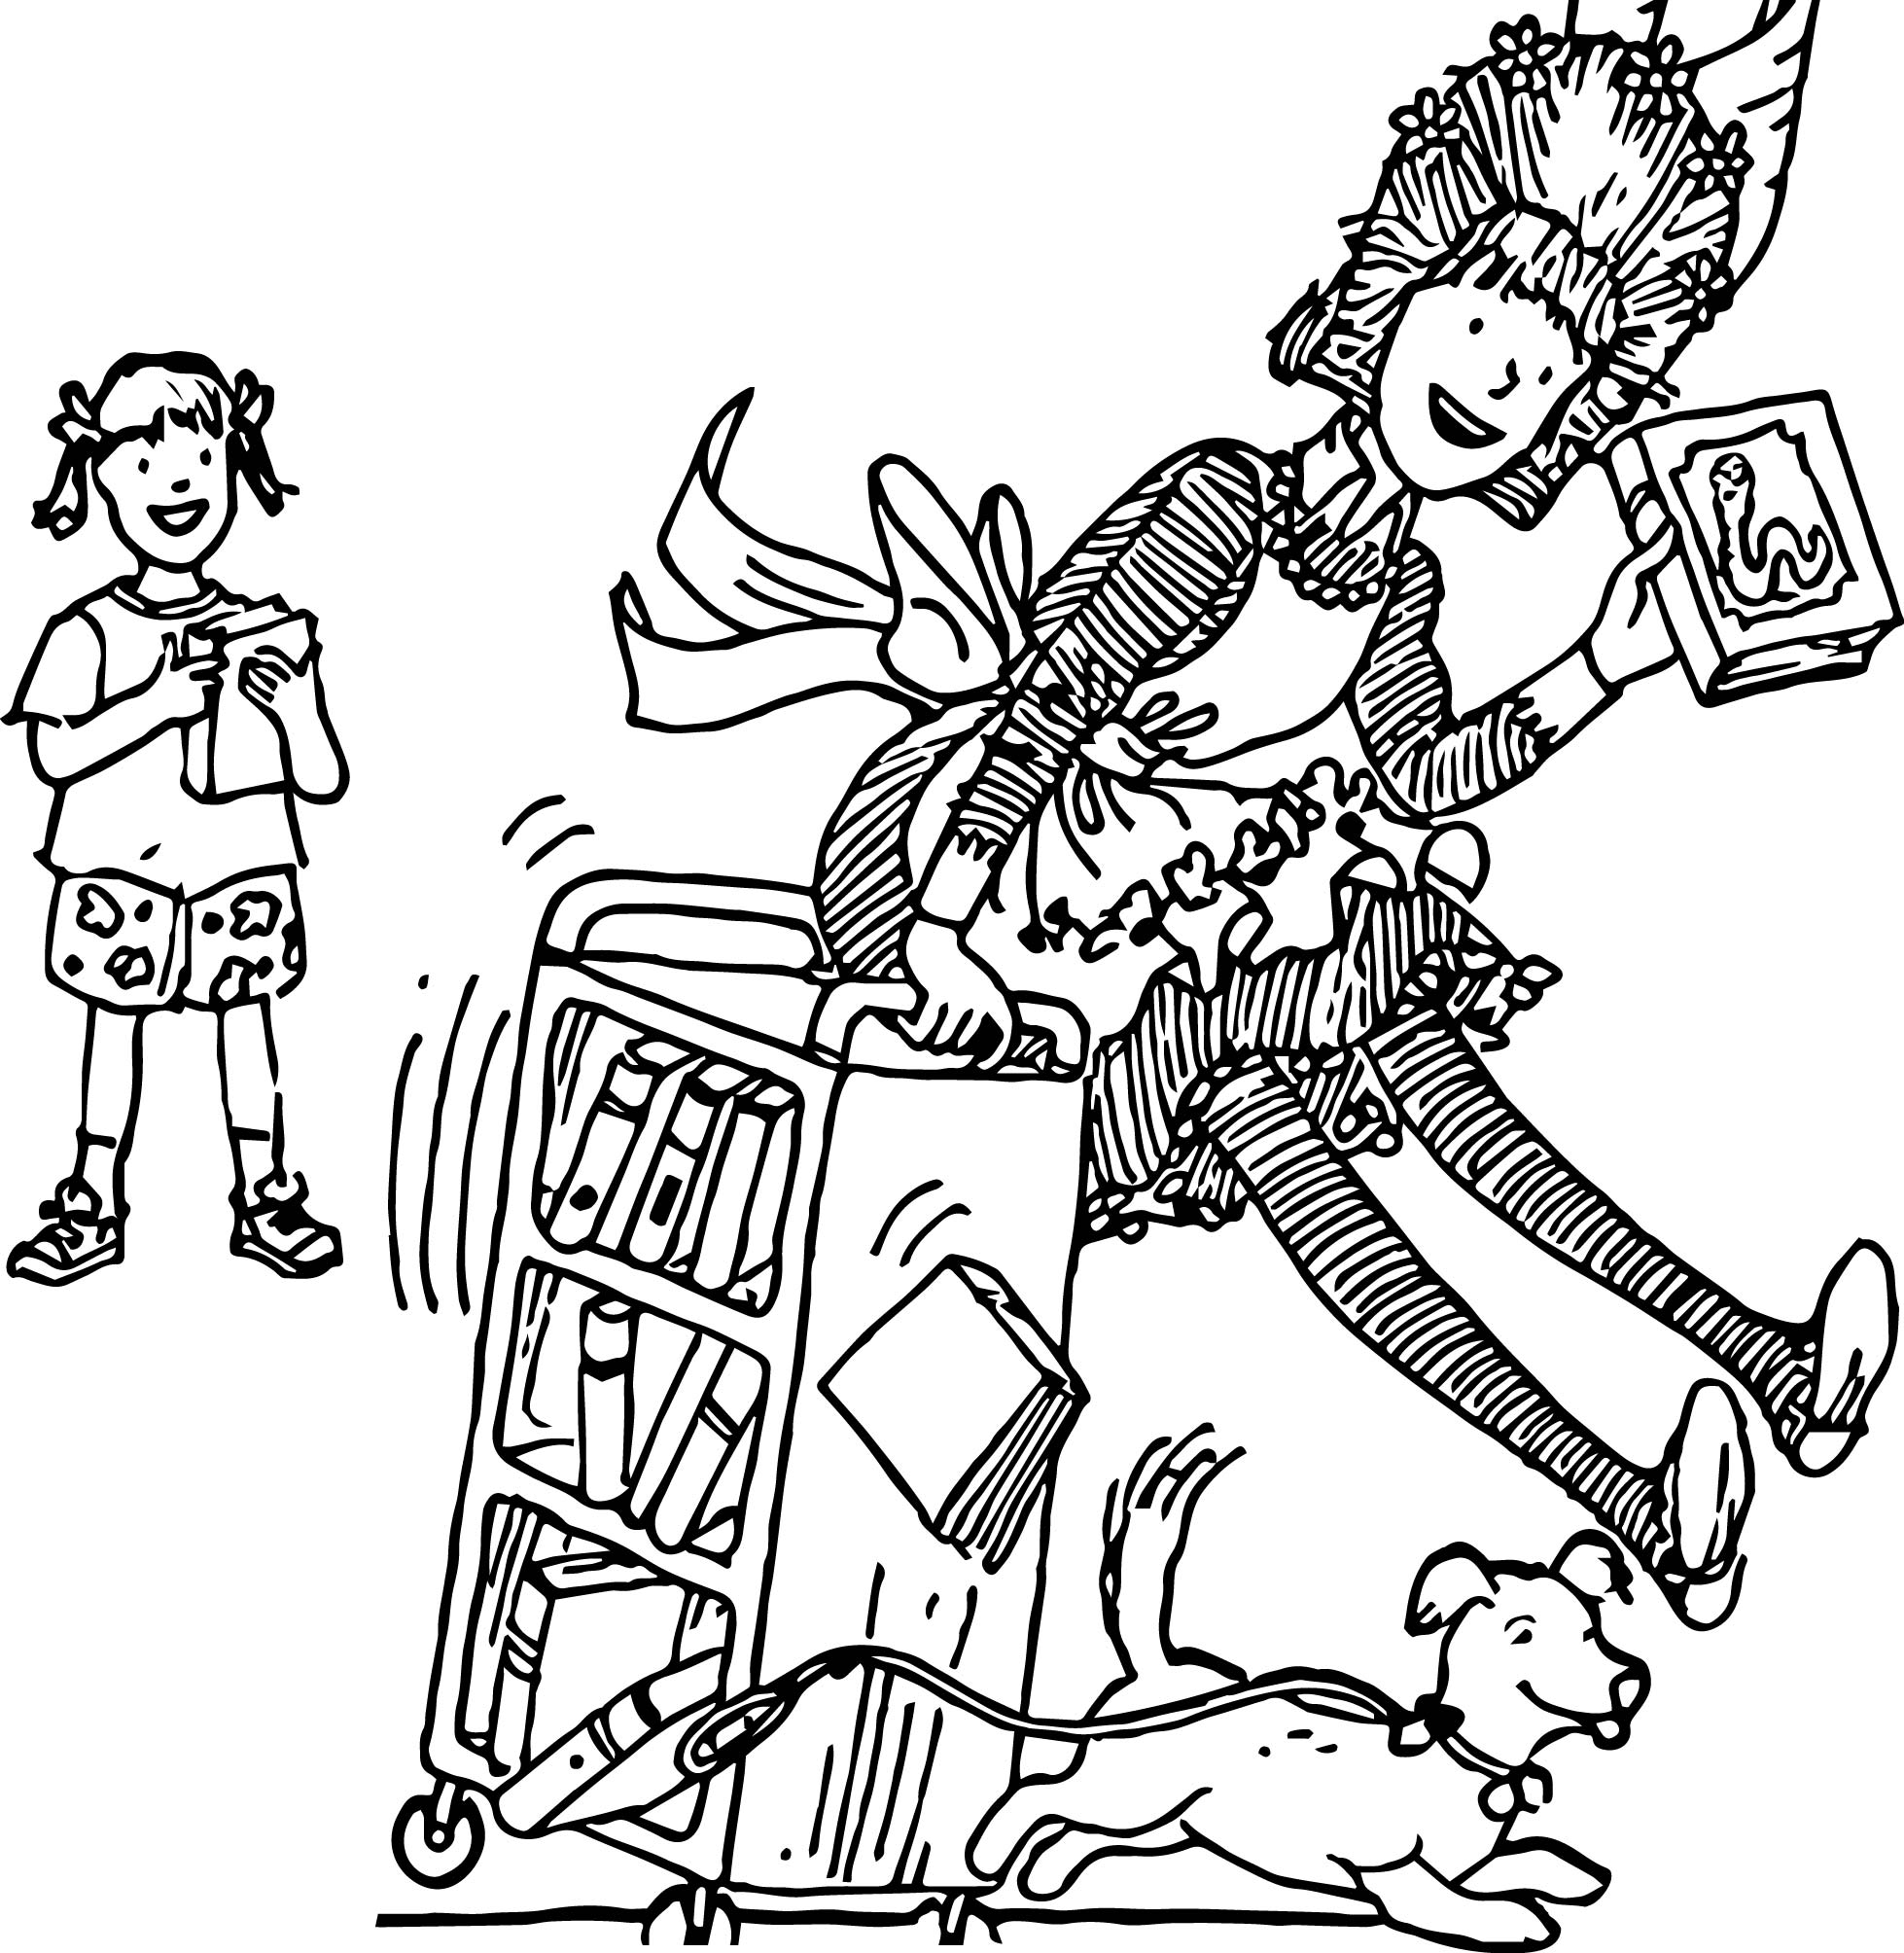 amelia bedelia coloring pages images for adults | Amelia Bedelia Run Coloring Page | Wecoloringpage.com